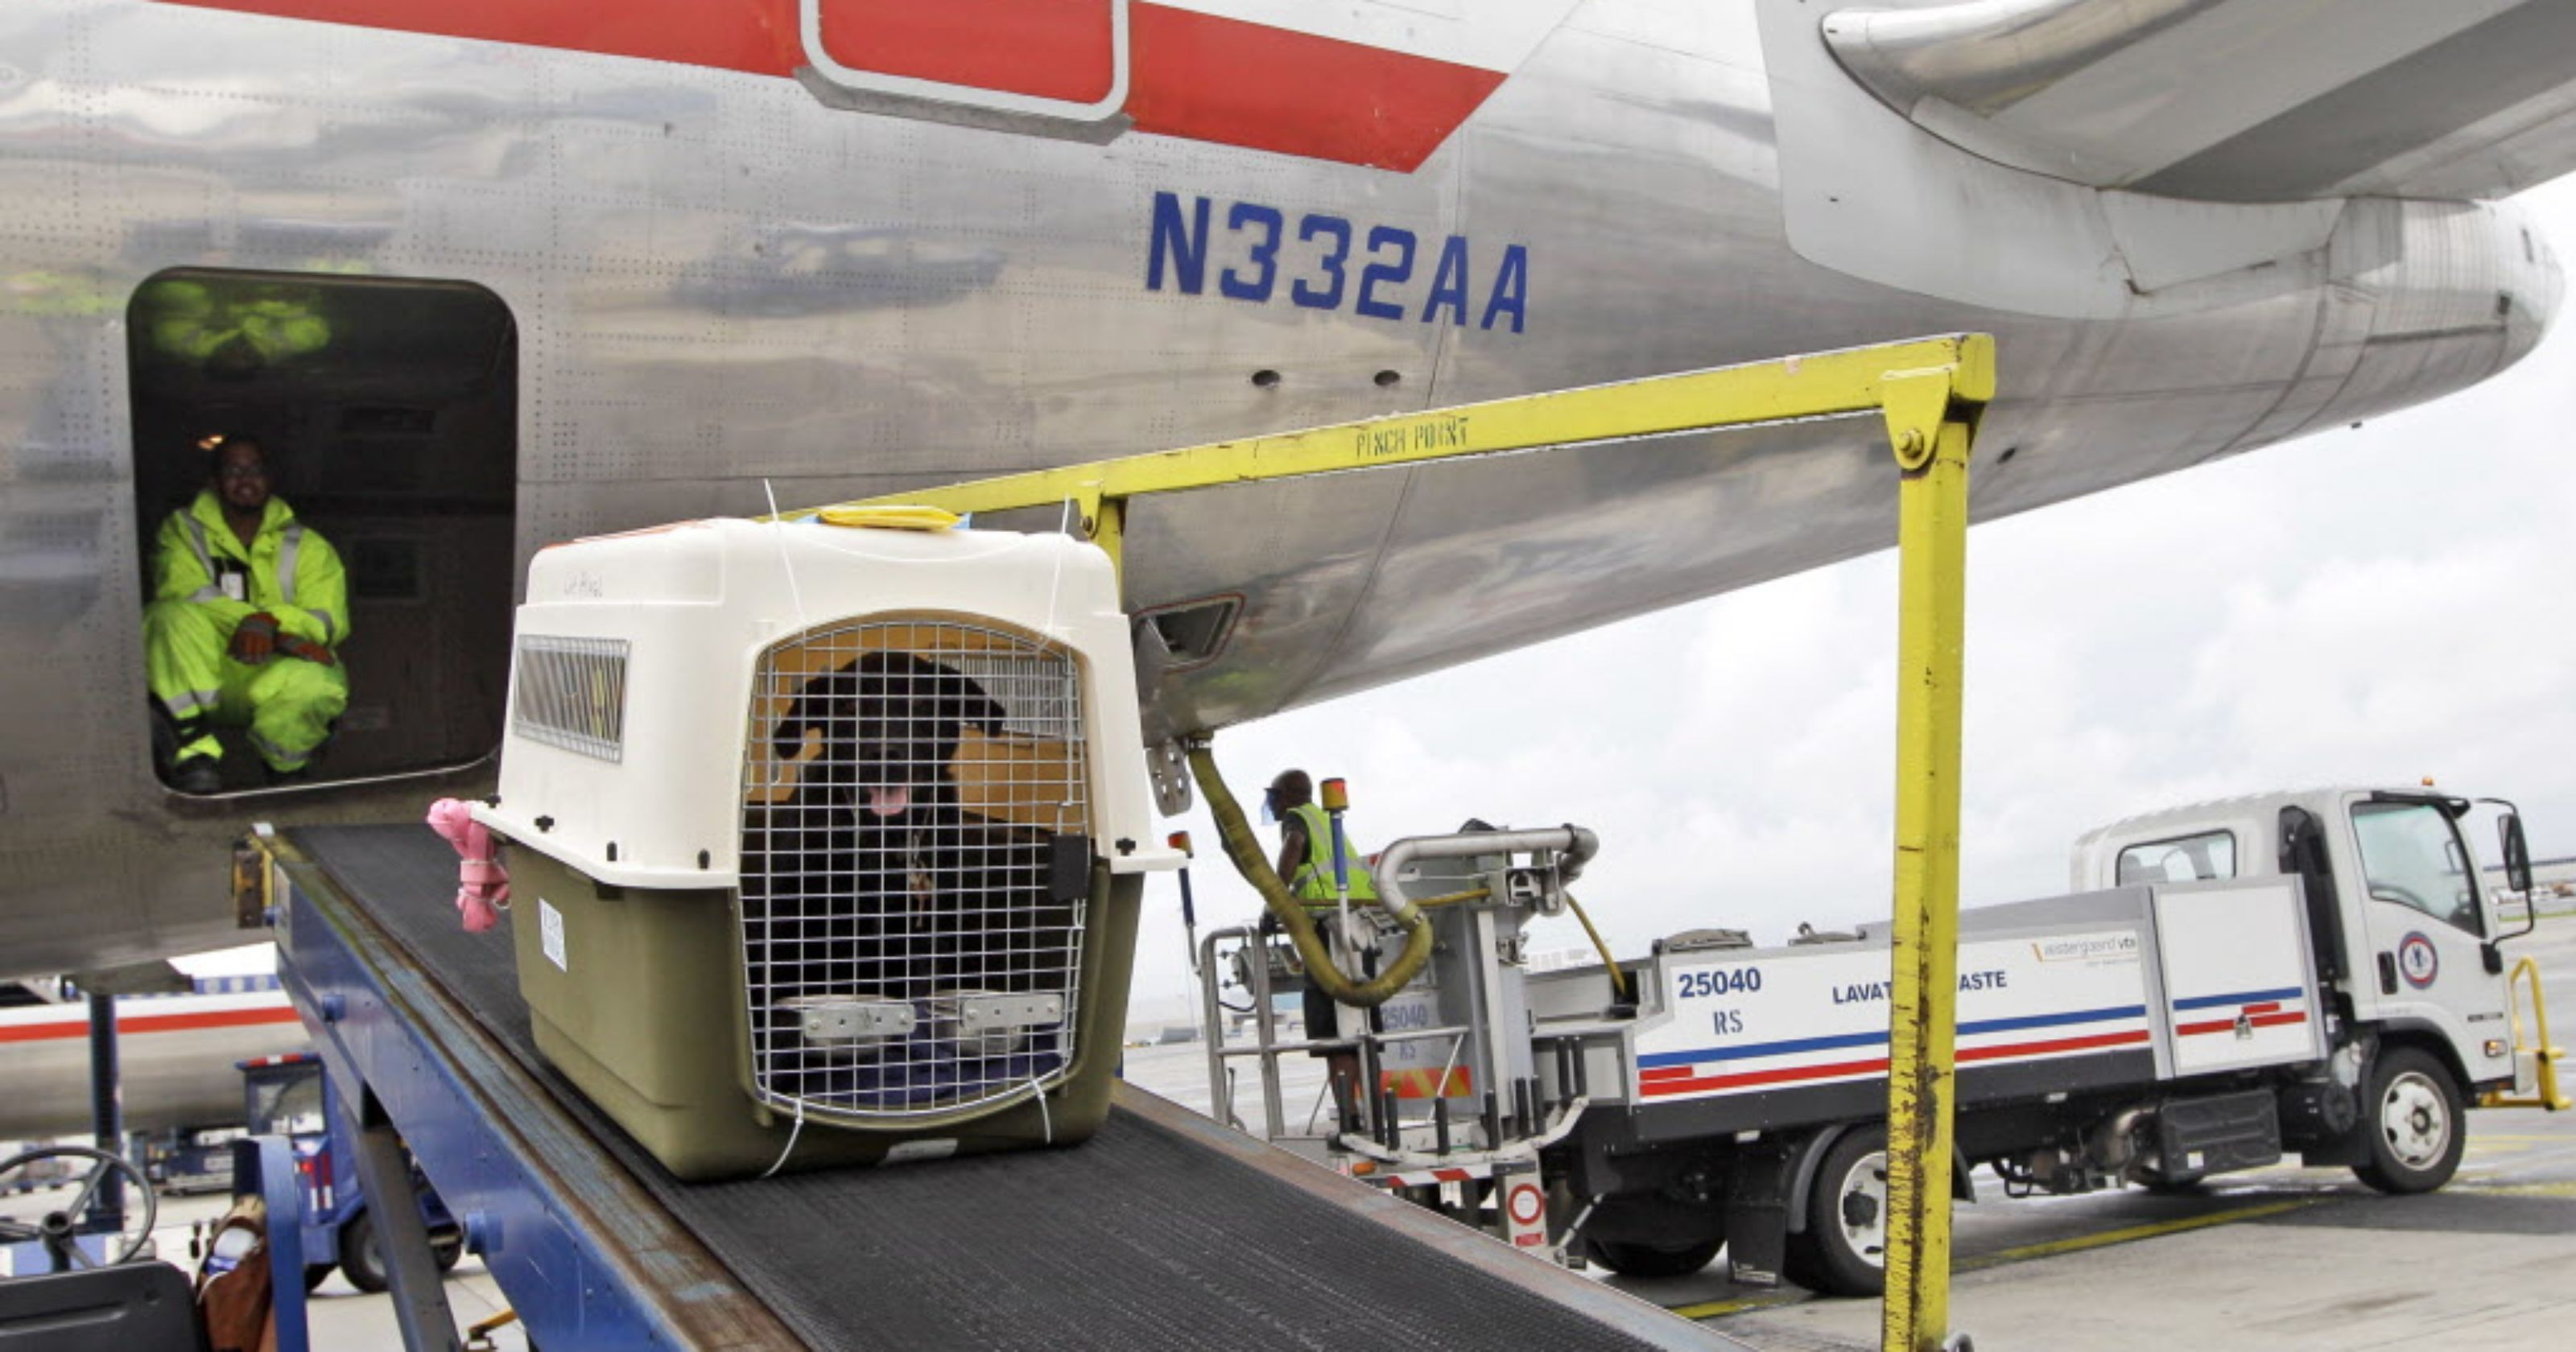 Flying can be dangerous for your pets. Could this help